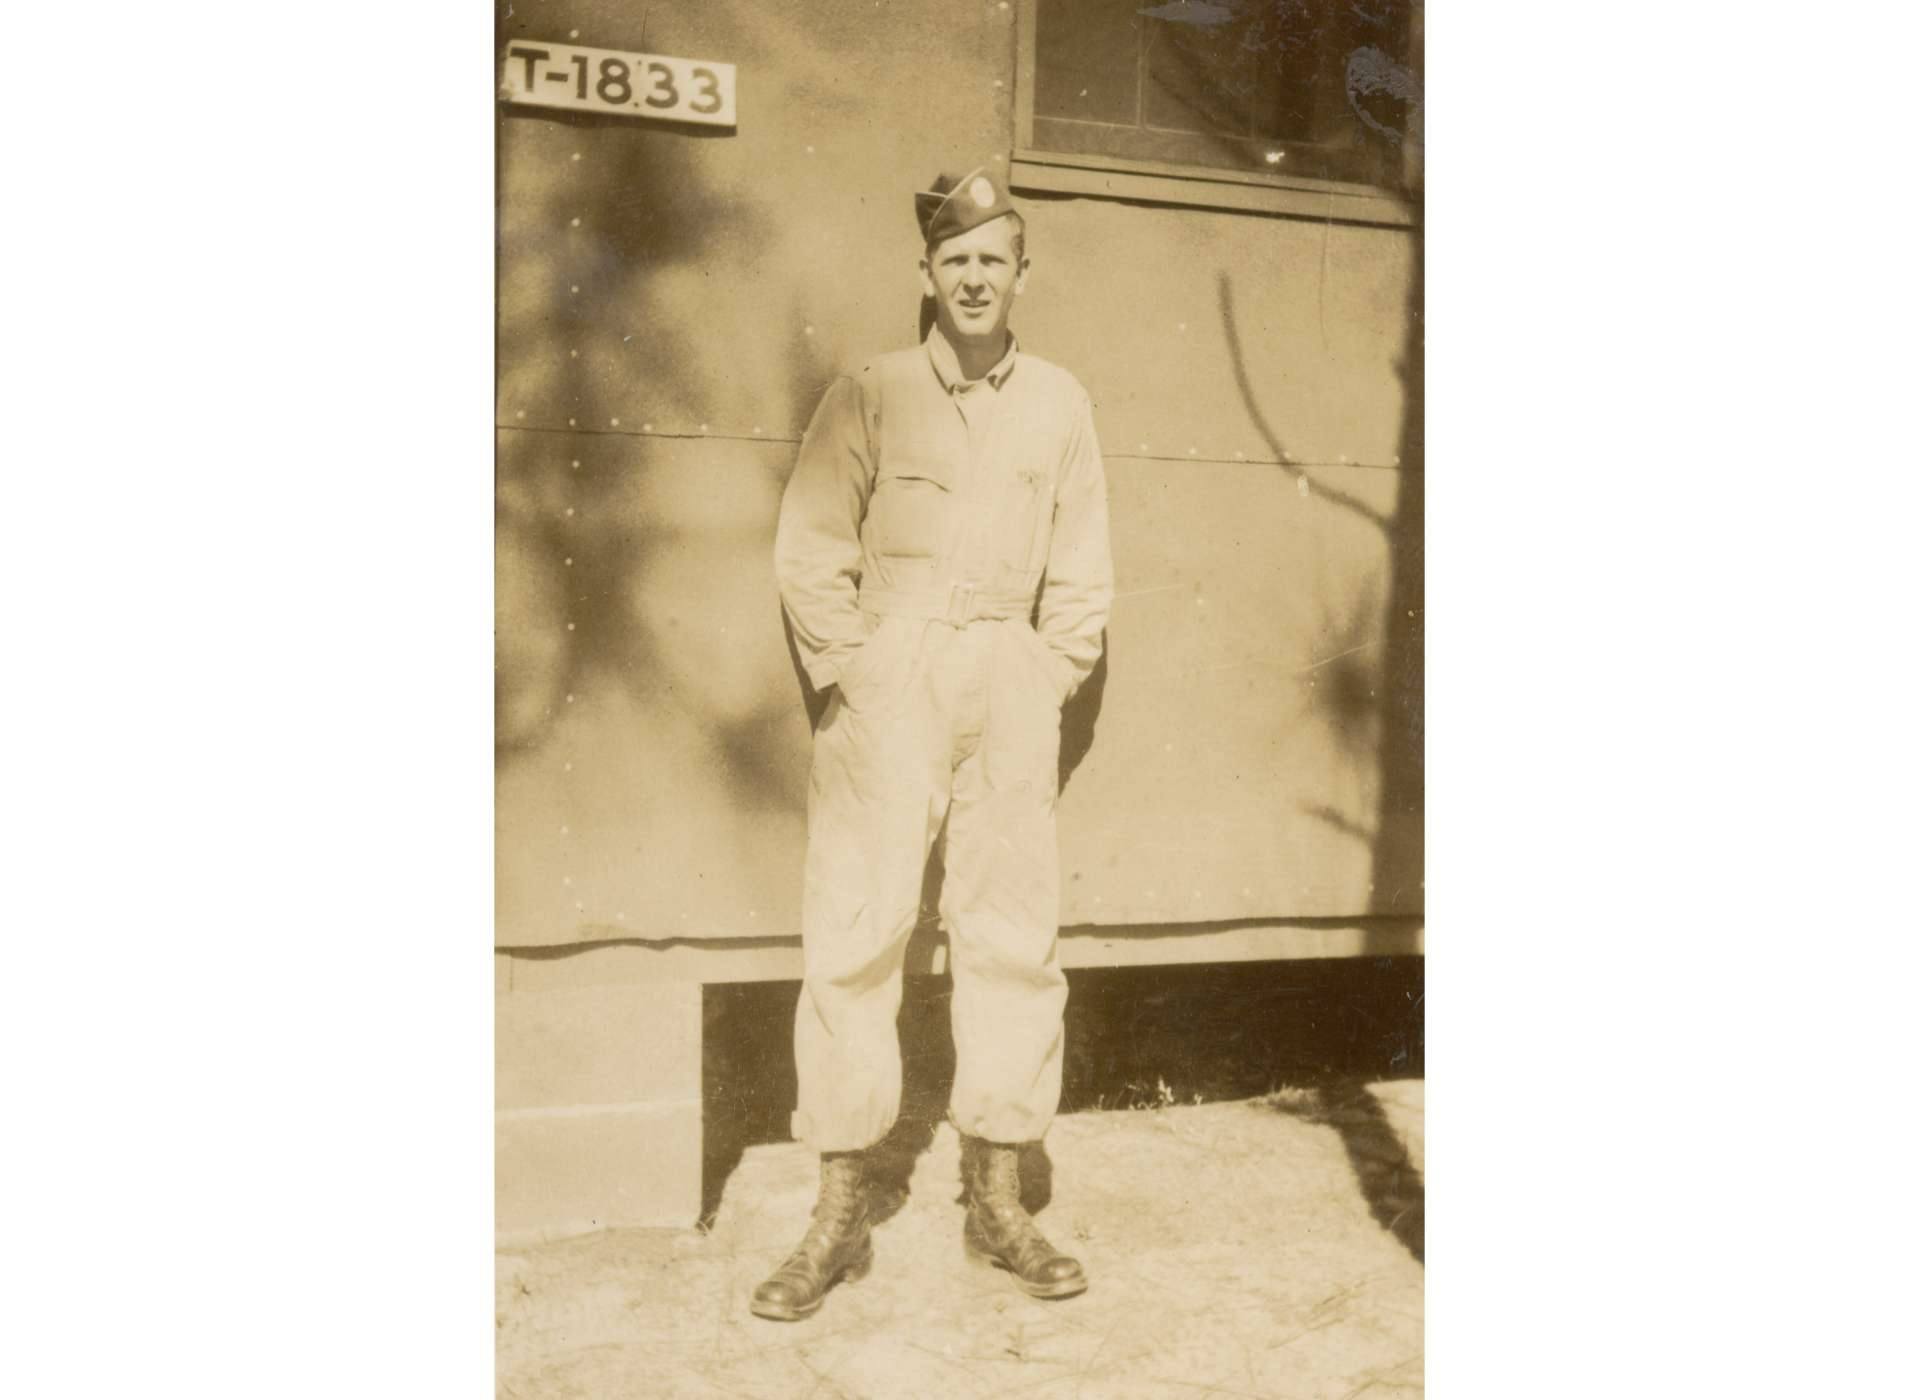 Blakey at Camp Mackall, North Caroline in 1943. Image courtesy of the National Archives, from the collection of The National WWII Museum.